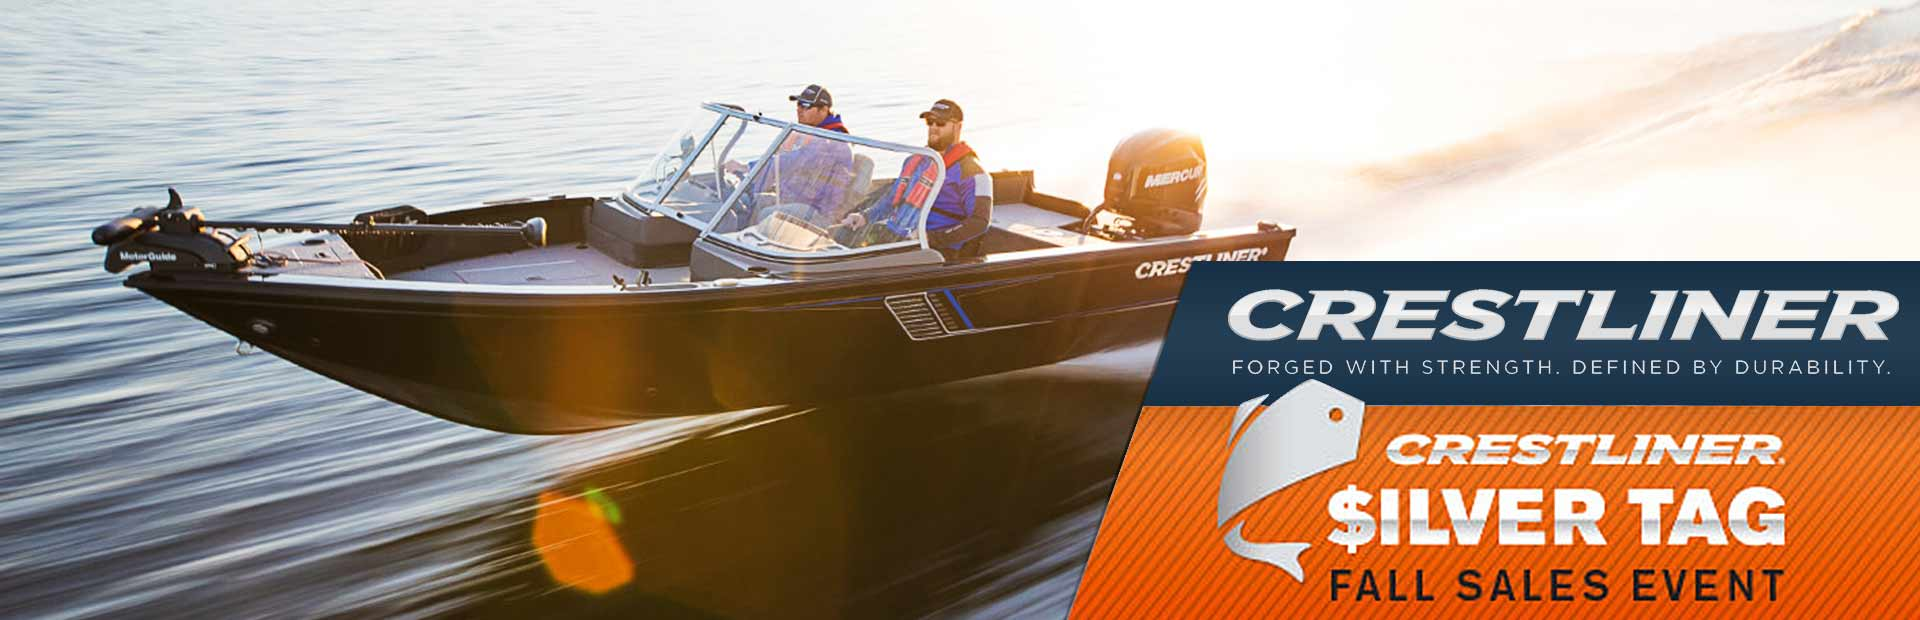 Crestliner: Silver Tag Fall Sales Event